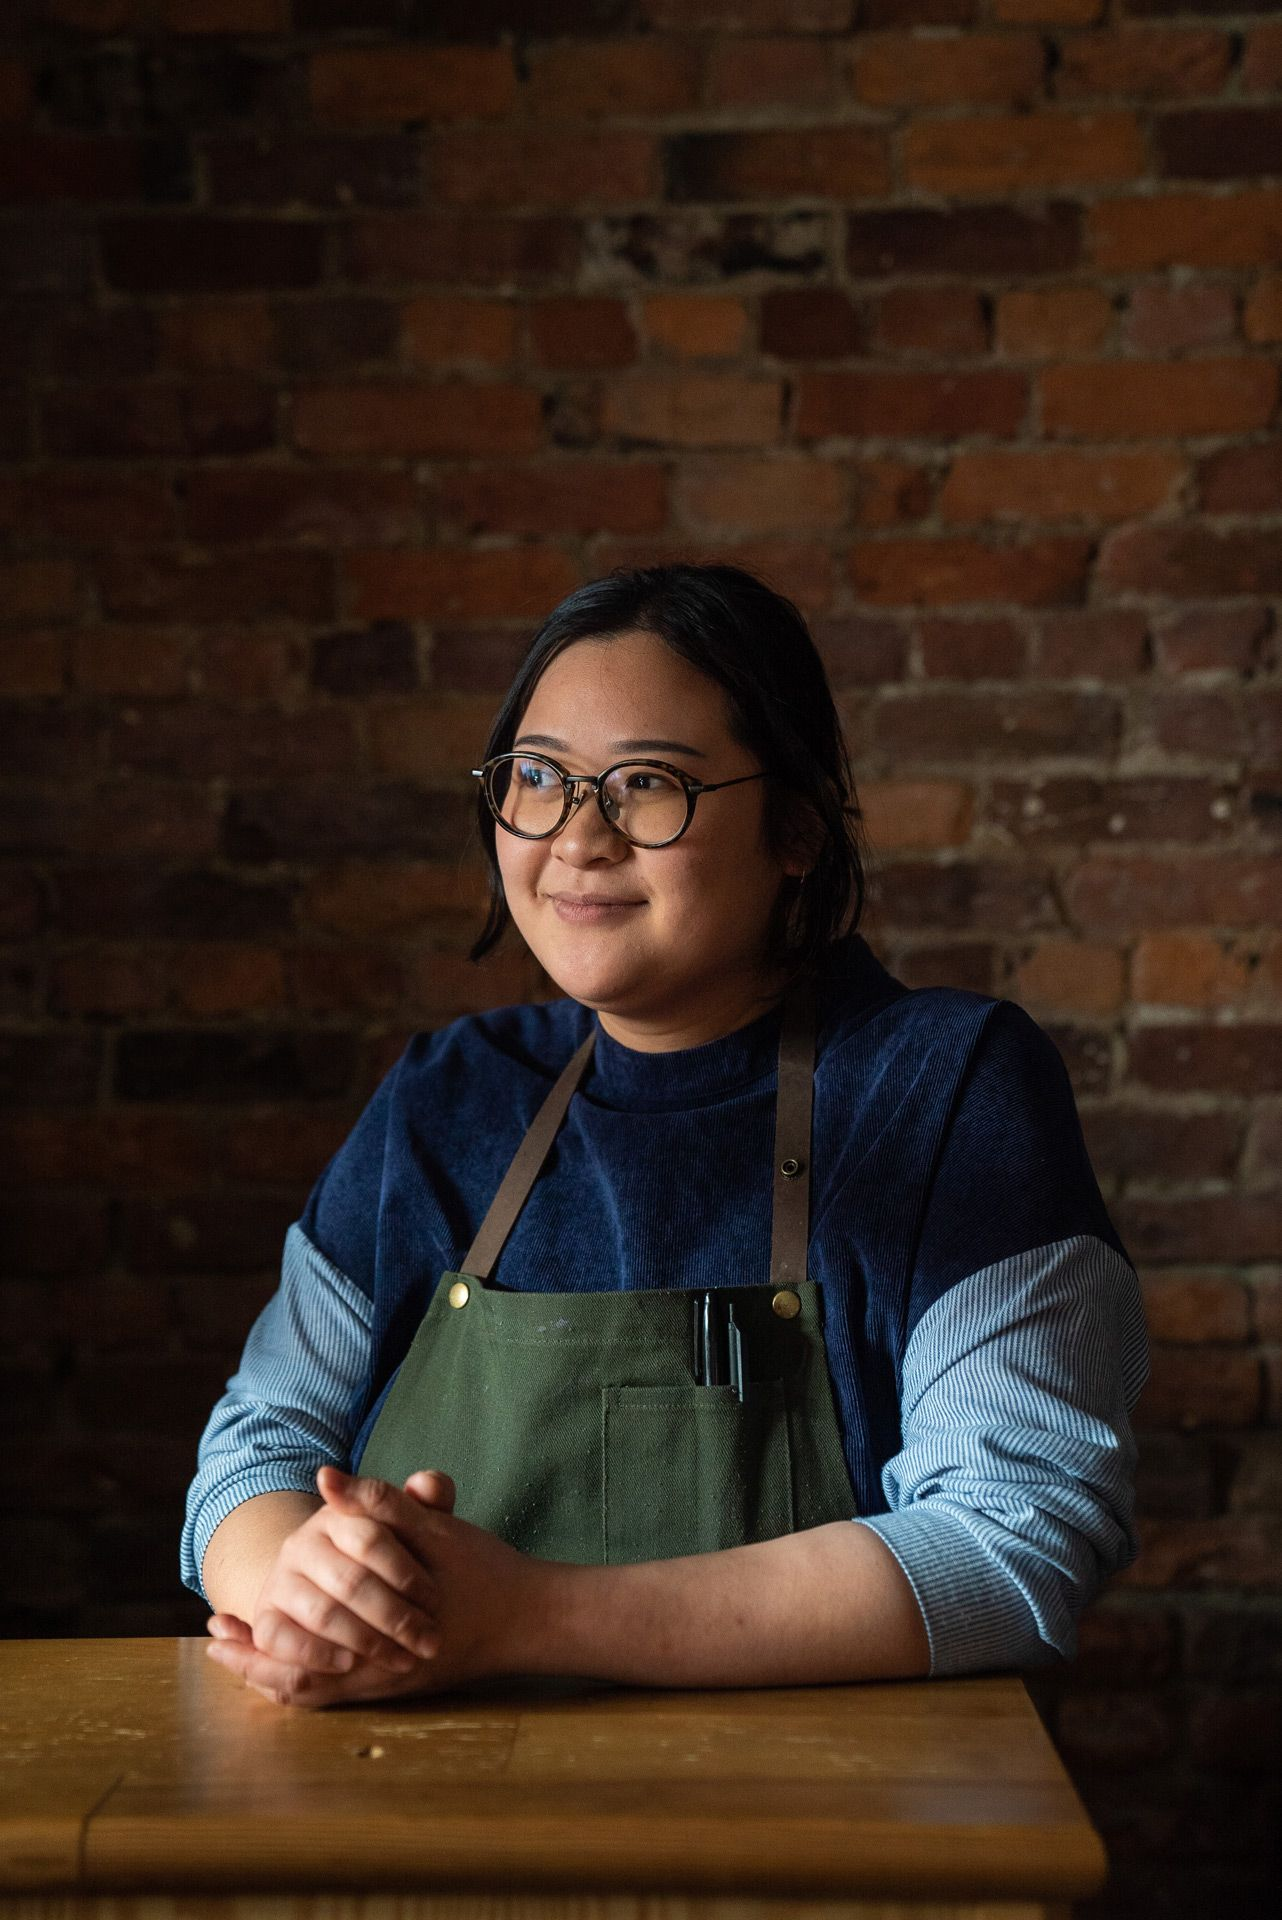 portrait of Anita Feng chef at Candide restaurant by Bruno Florin